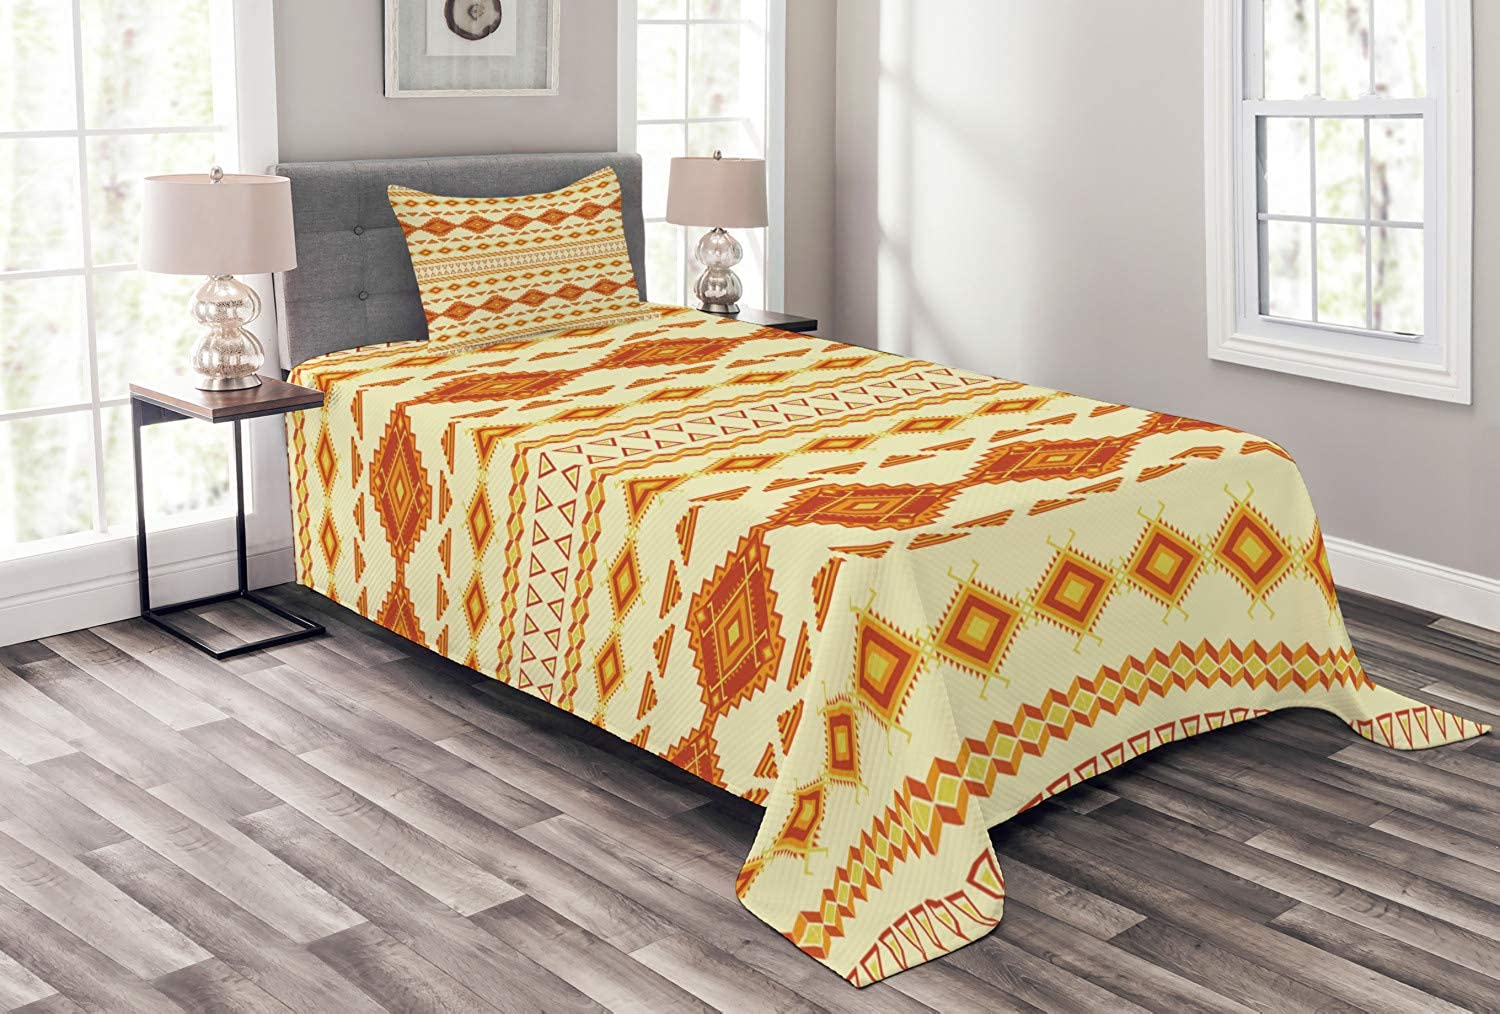 Ambesonne Native American Bedspread Set Twin Size, Old Aztec Pattern with Vintage colors Ethnic Mexican Indigenous Culture, Decorative Quilted 2 Piece Coverlet Set with Pillow Sham, Yellow orange